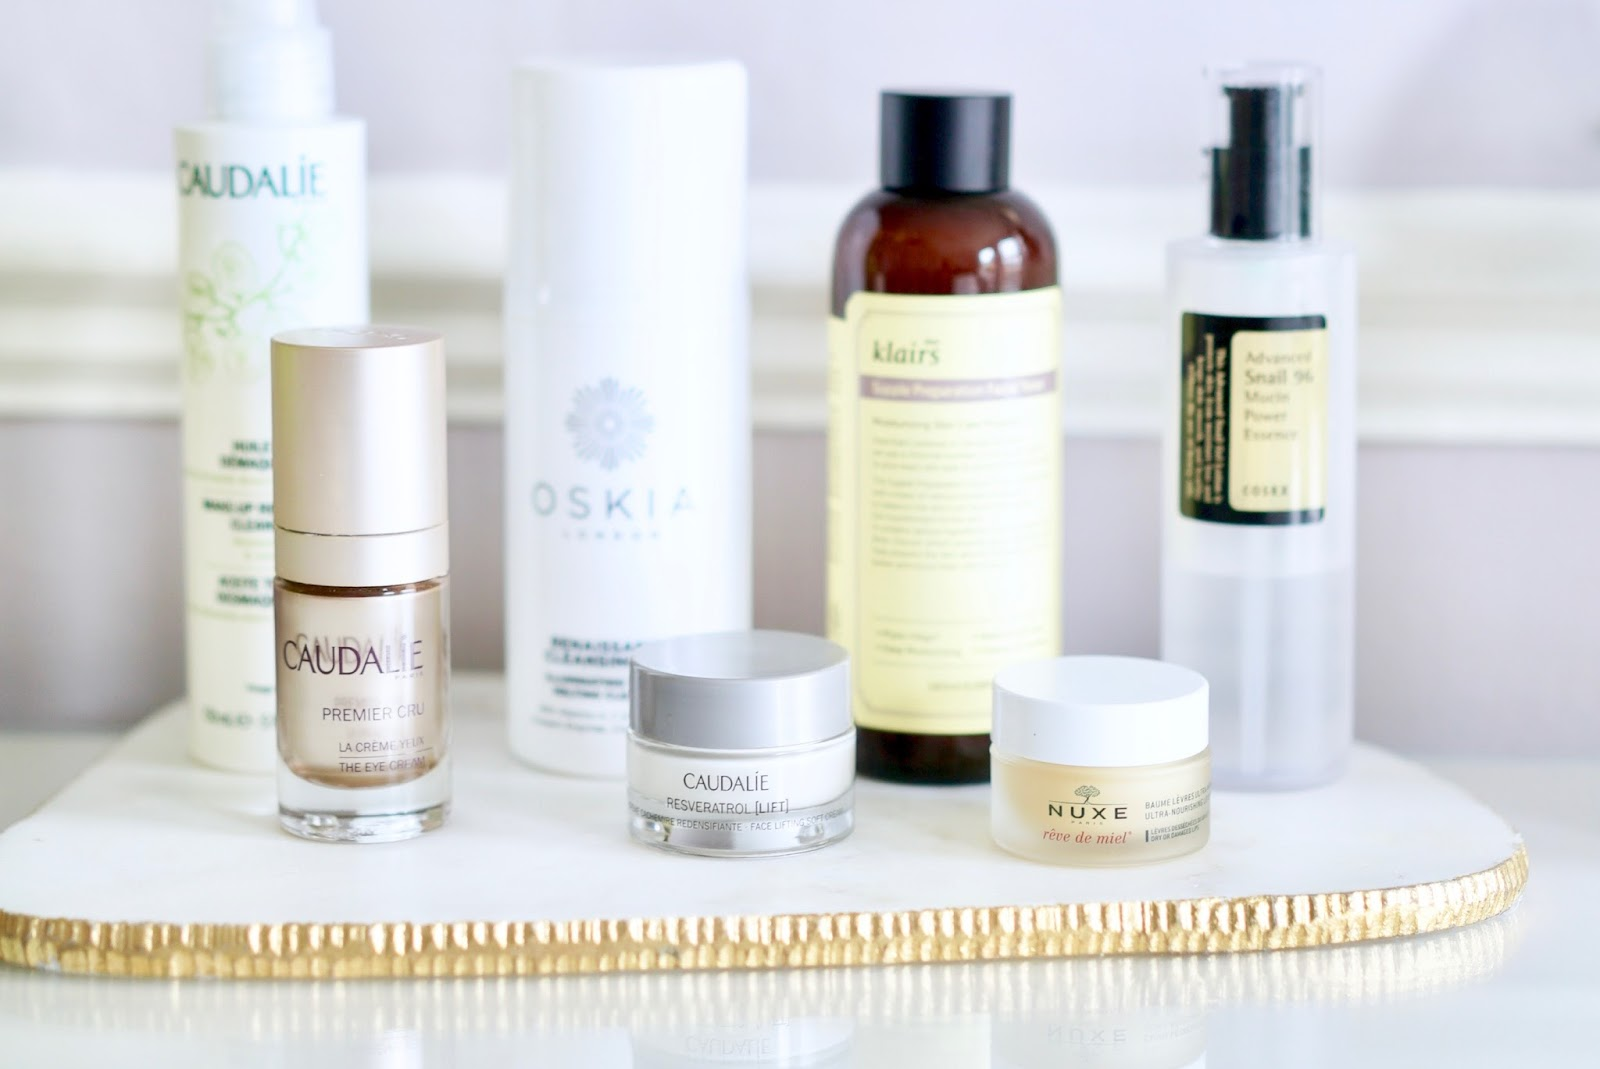 CURRENT SKINCARE ROUTINE FOR COMBINATION SKIN  caudalie, nuxe, cosrx, klairs, oskia